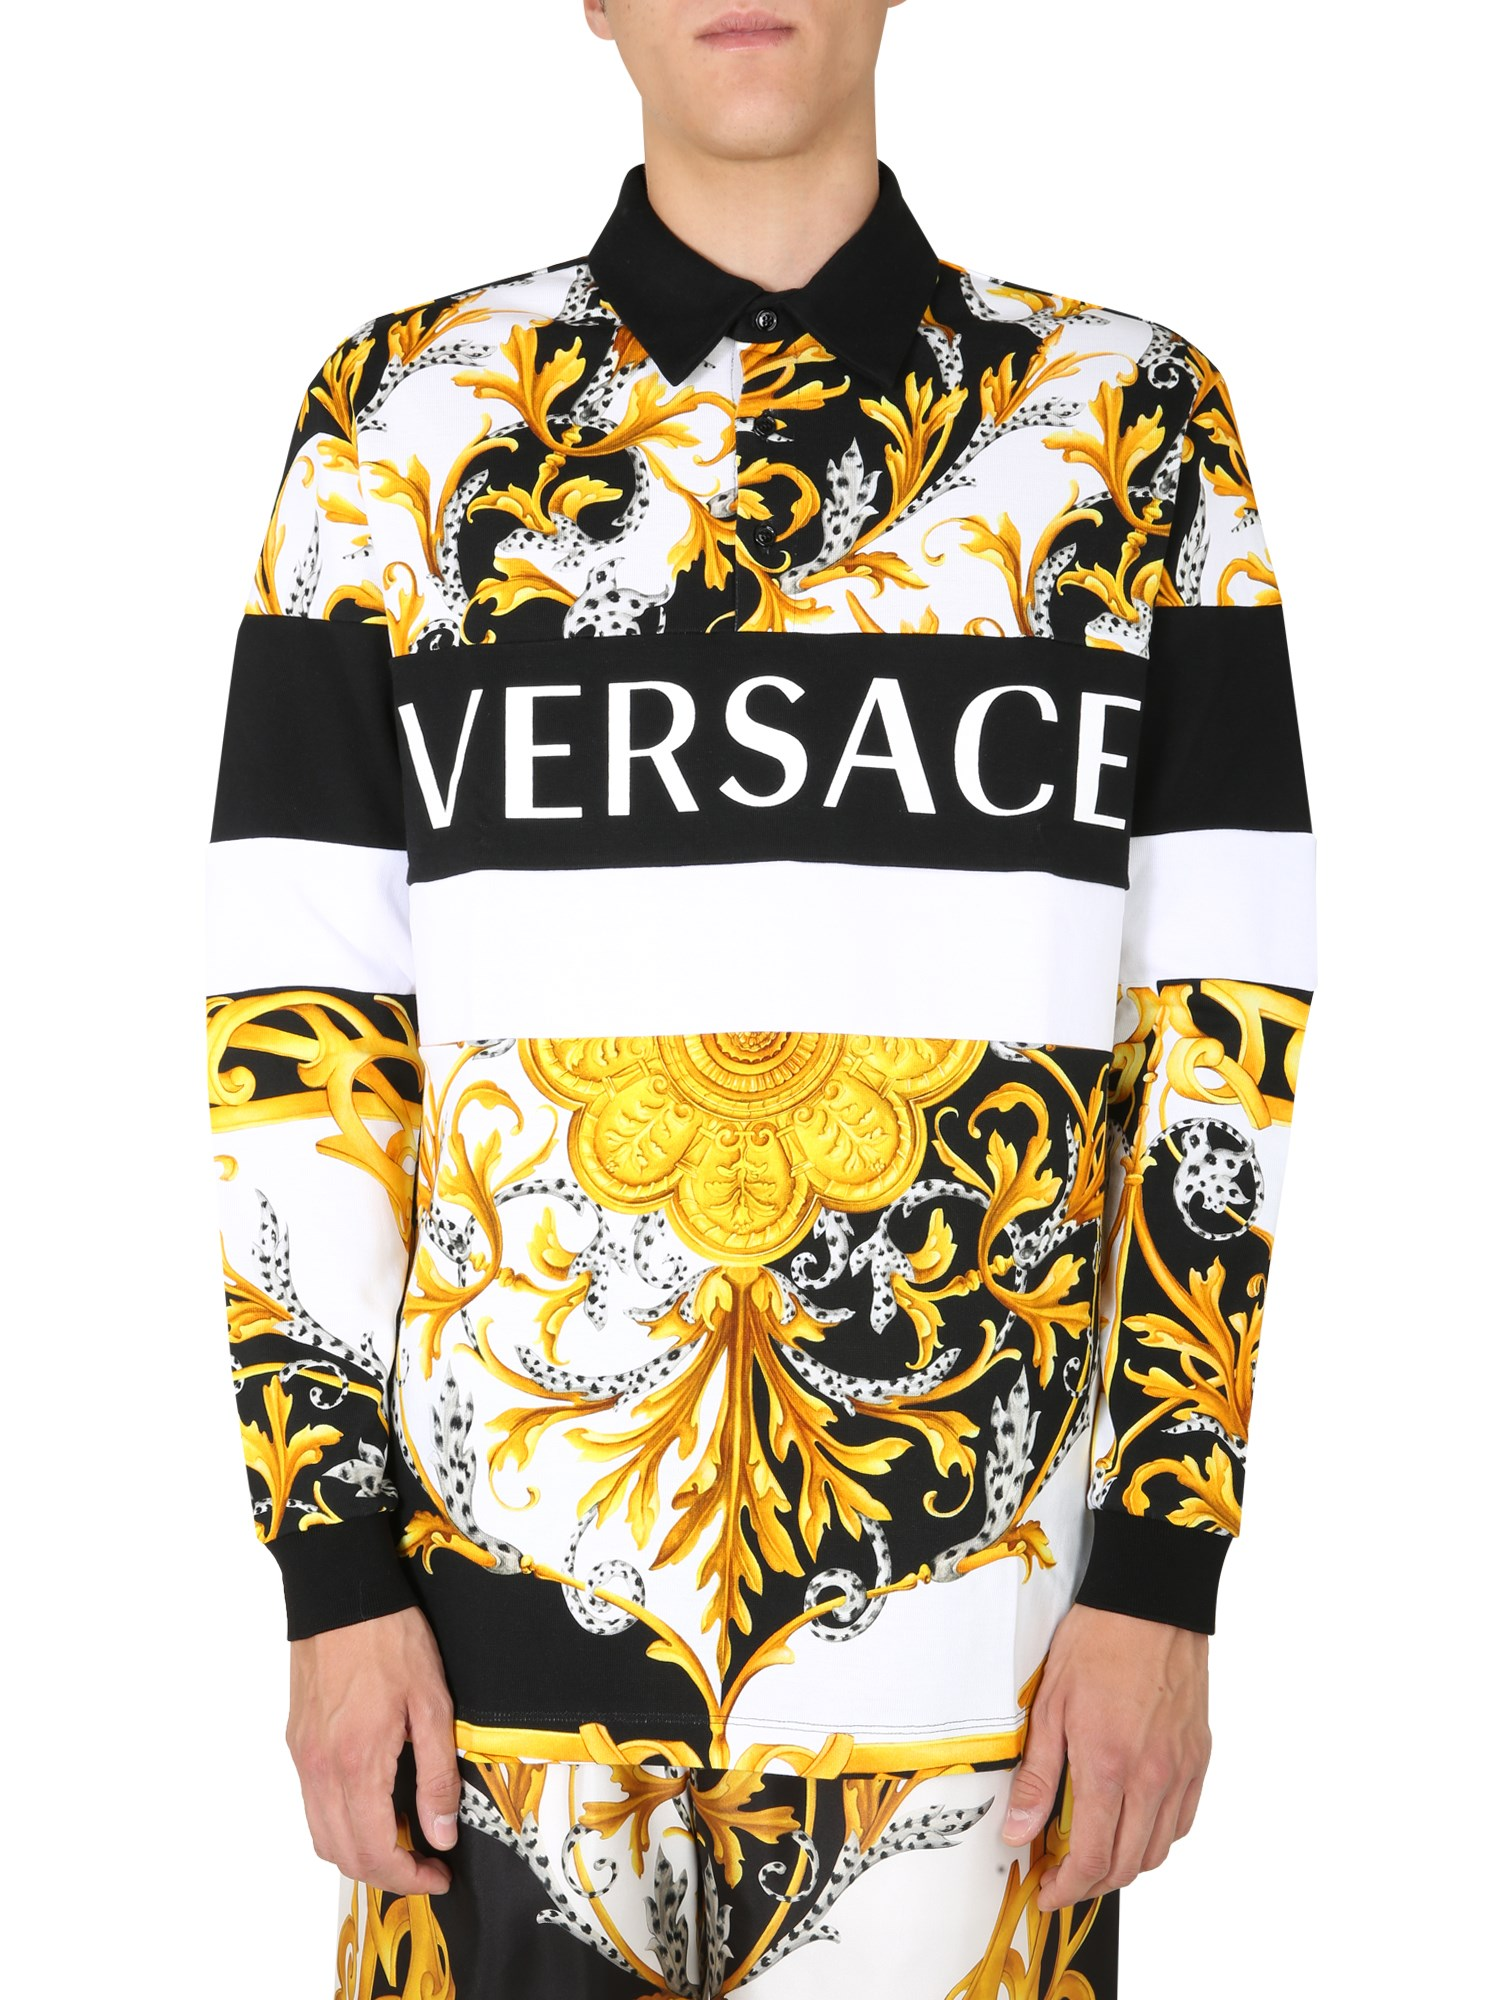 versace long sleeved polo shirt